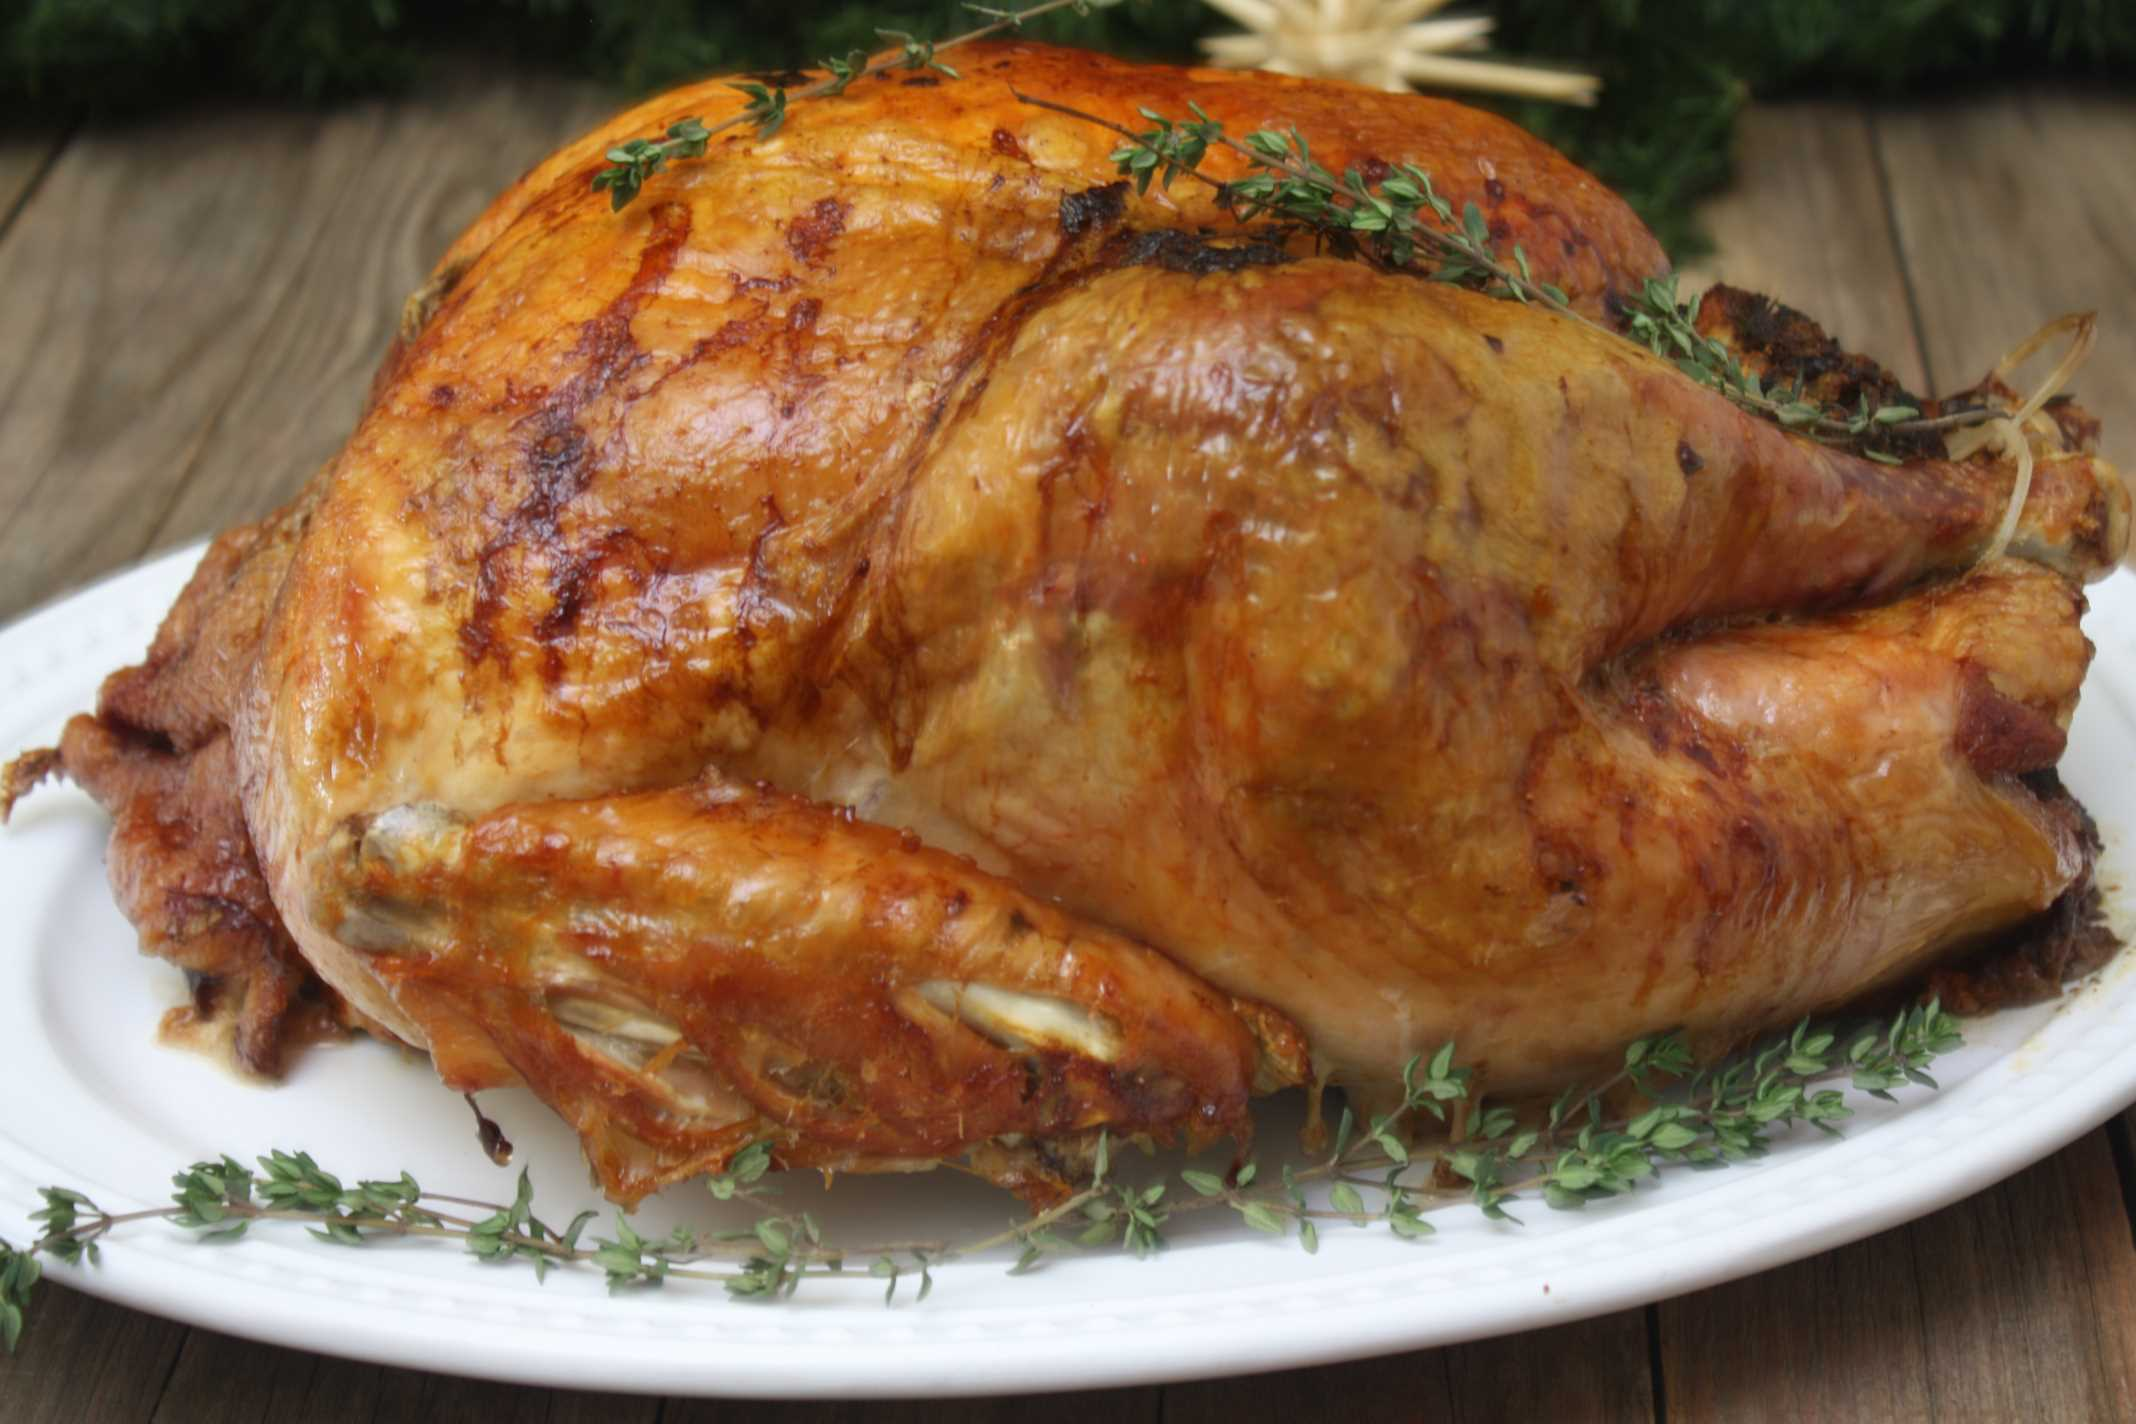 Roasted Turkey on platter with herbs